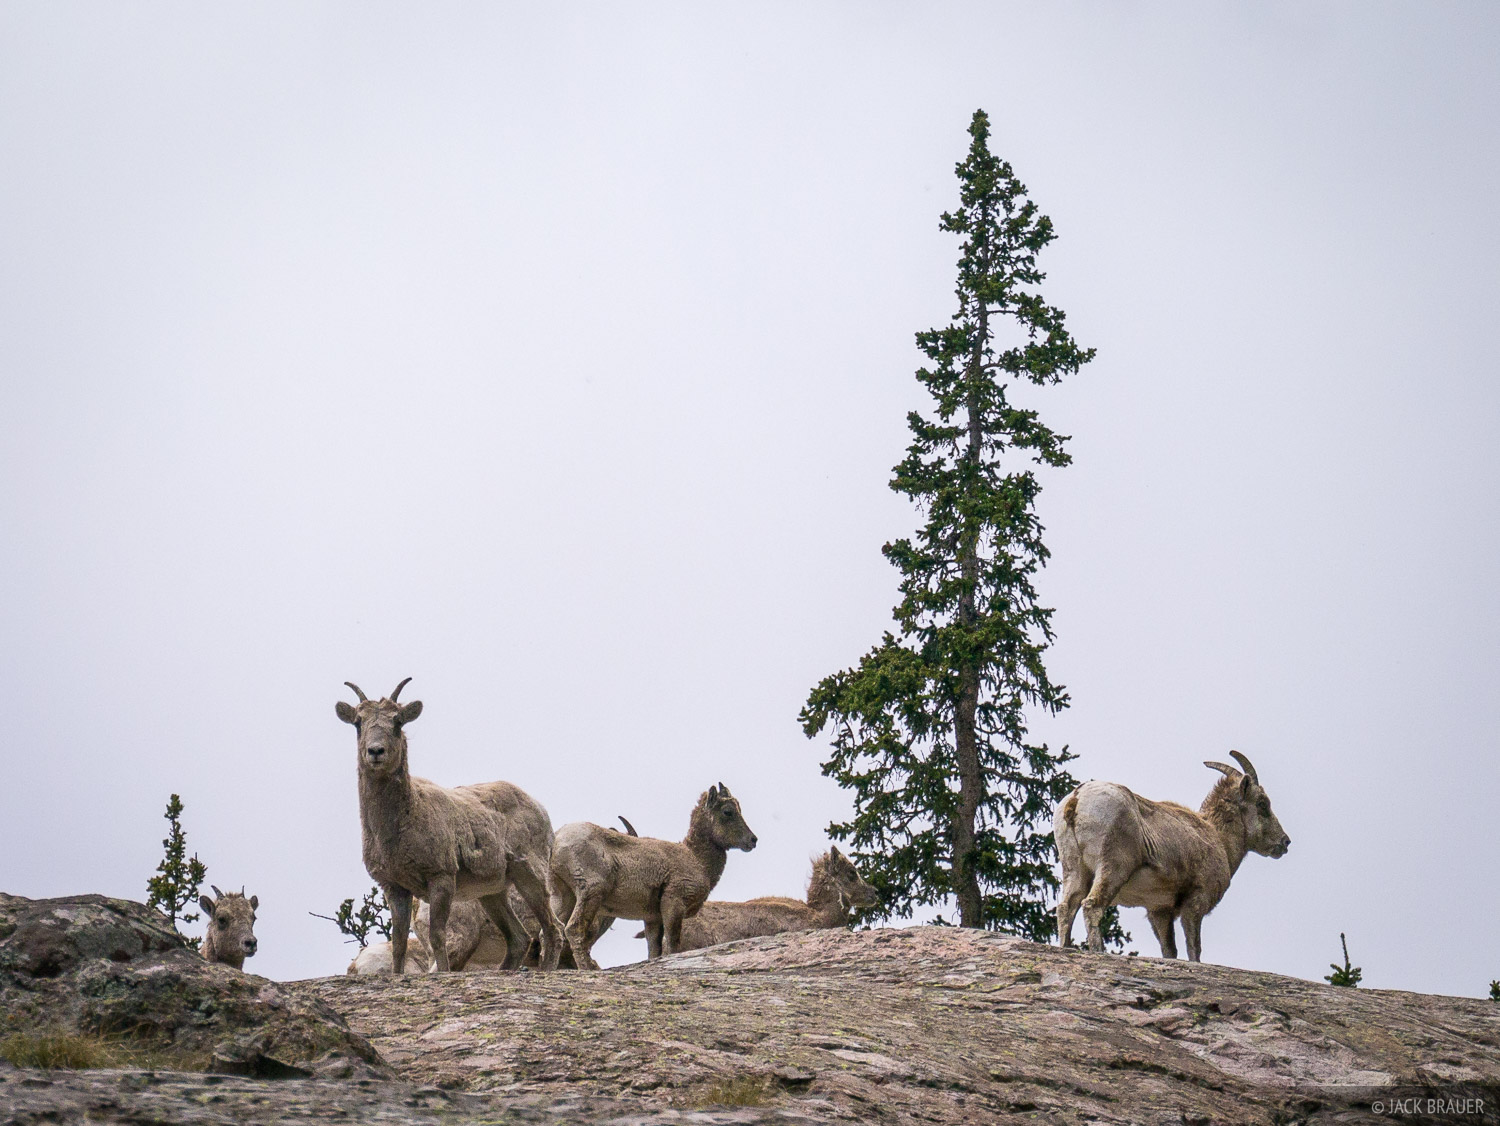 Colorado, Sangre de Cristos, bighorn sheep, photo